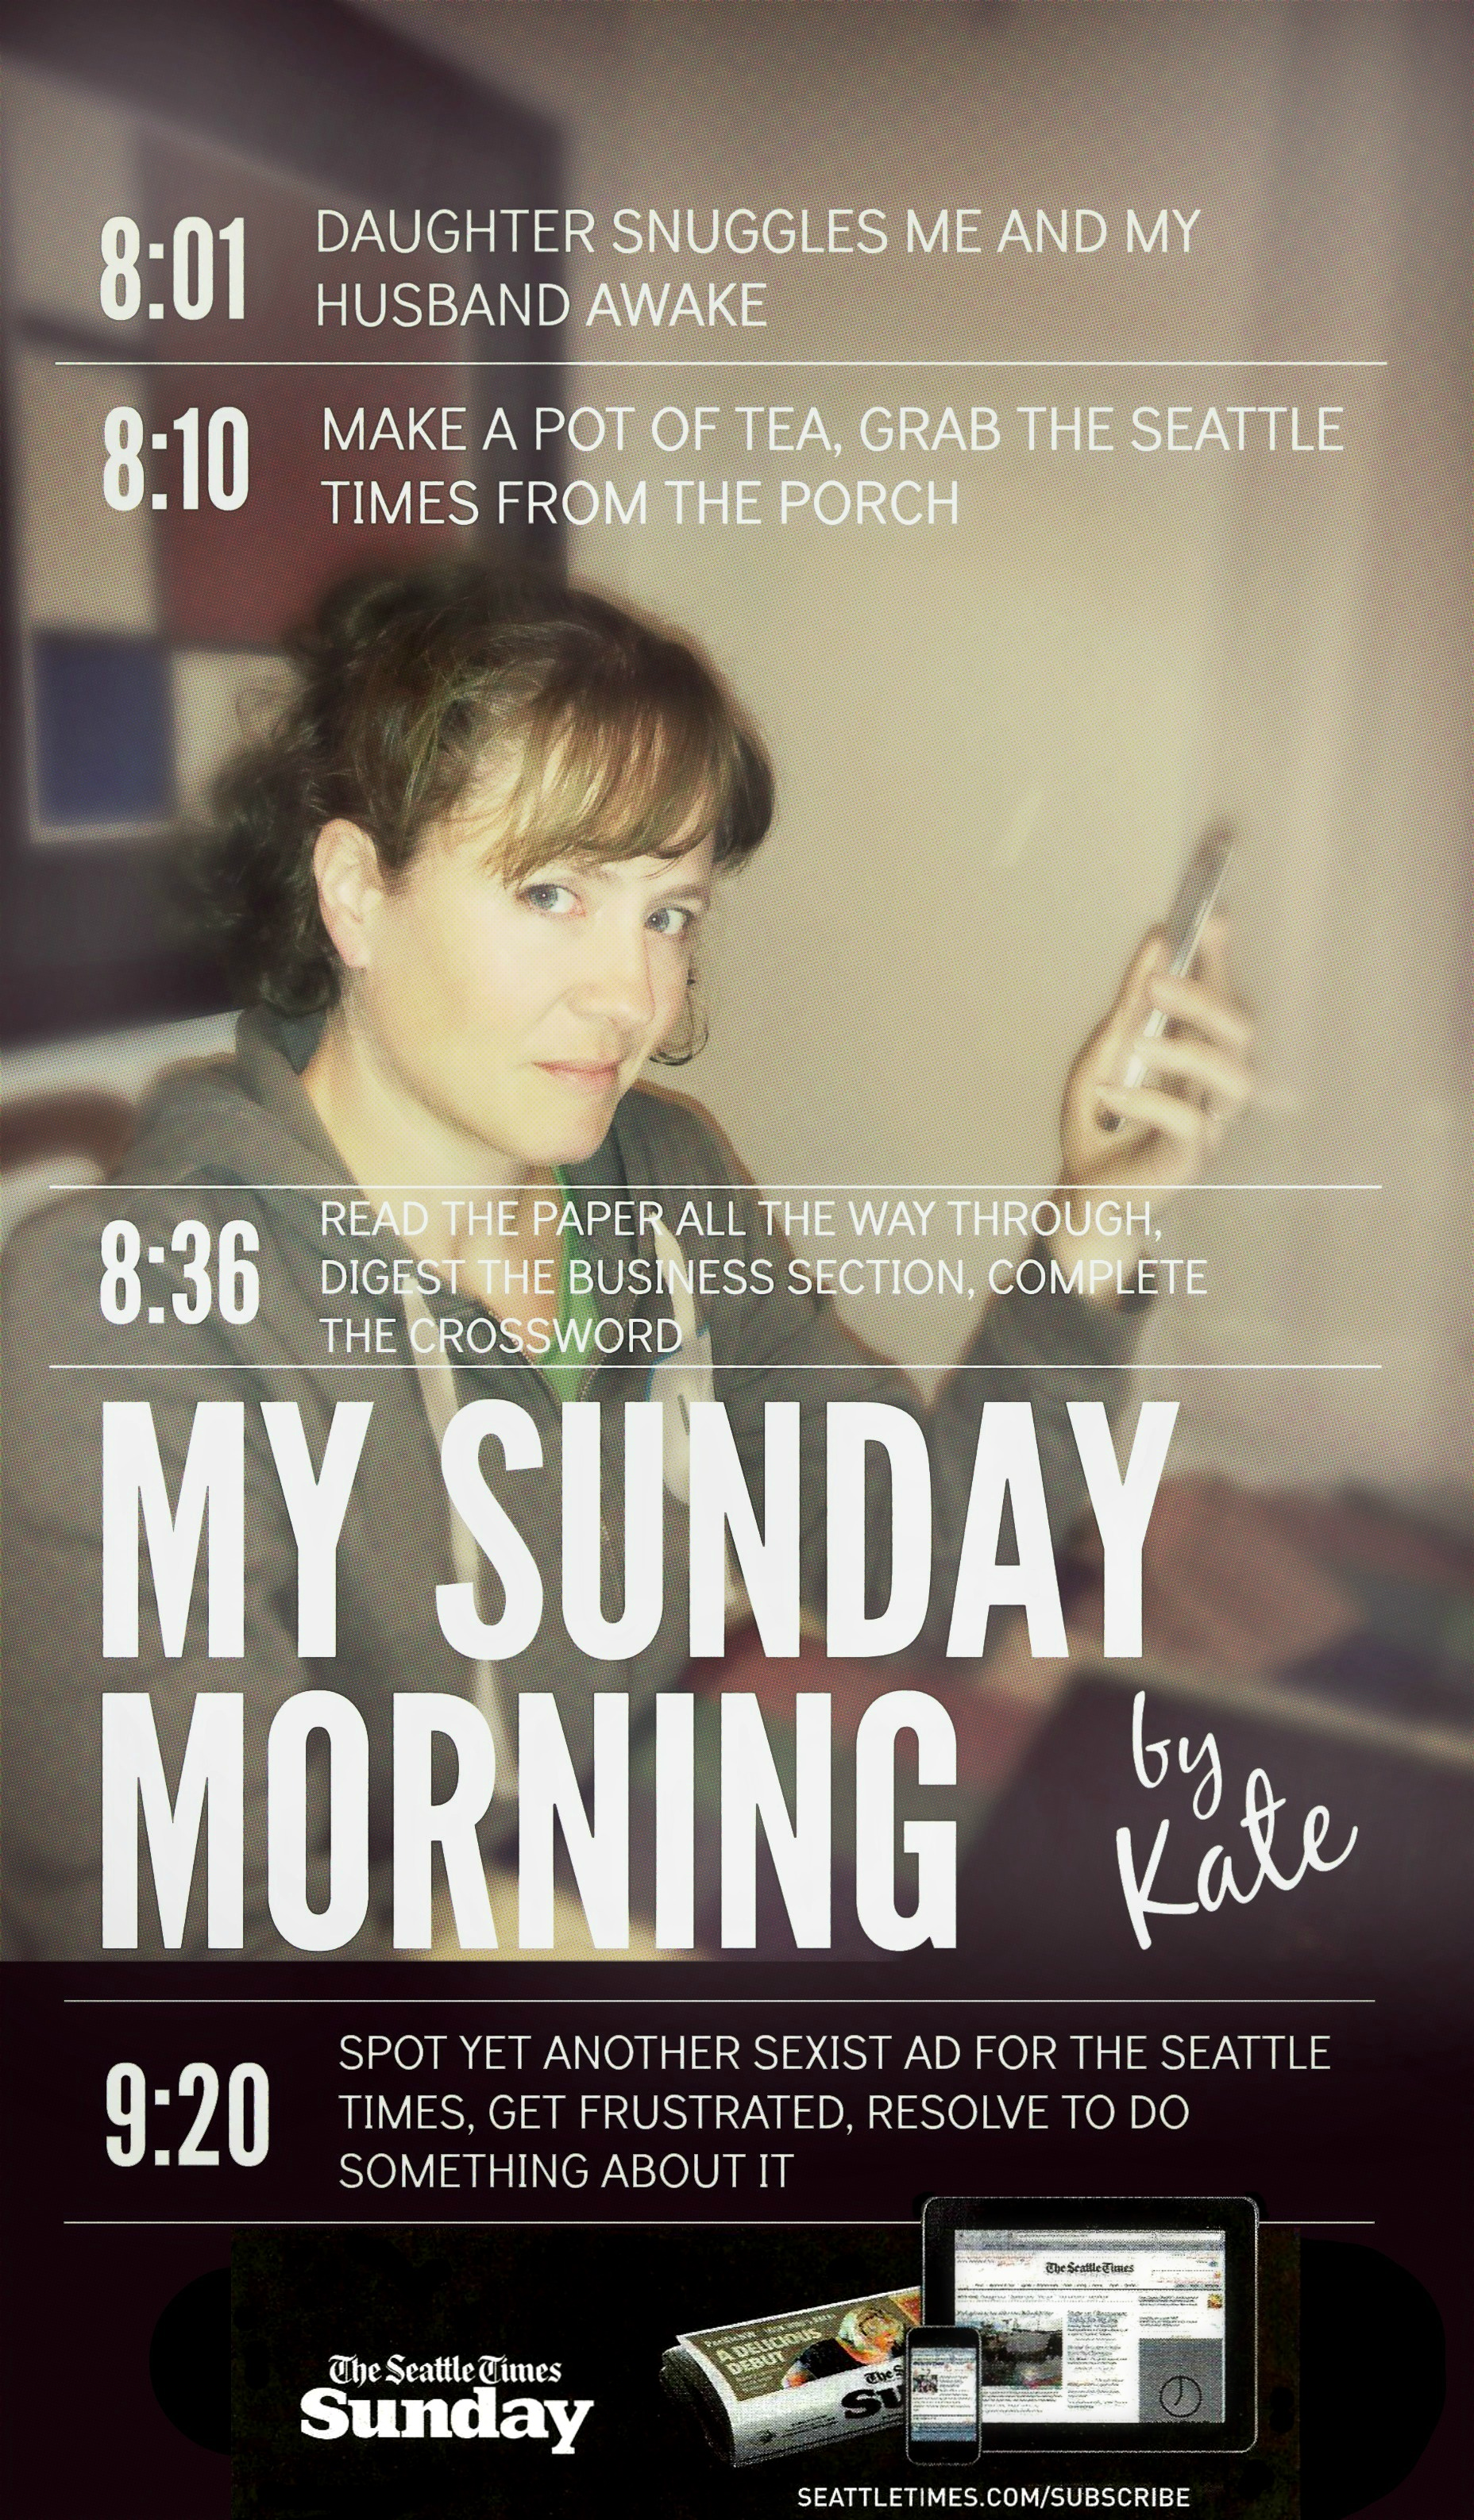 Kate's Sunday Morning